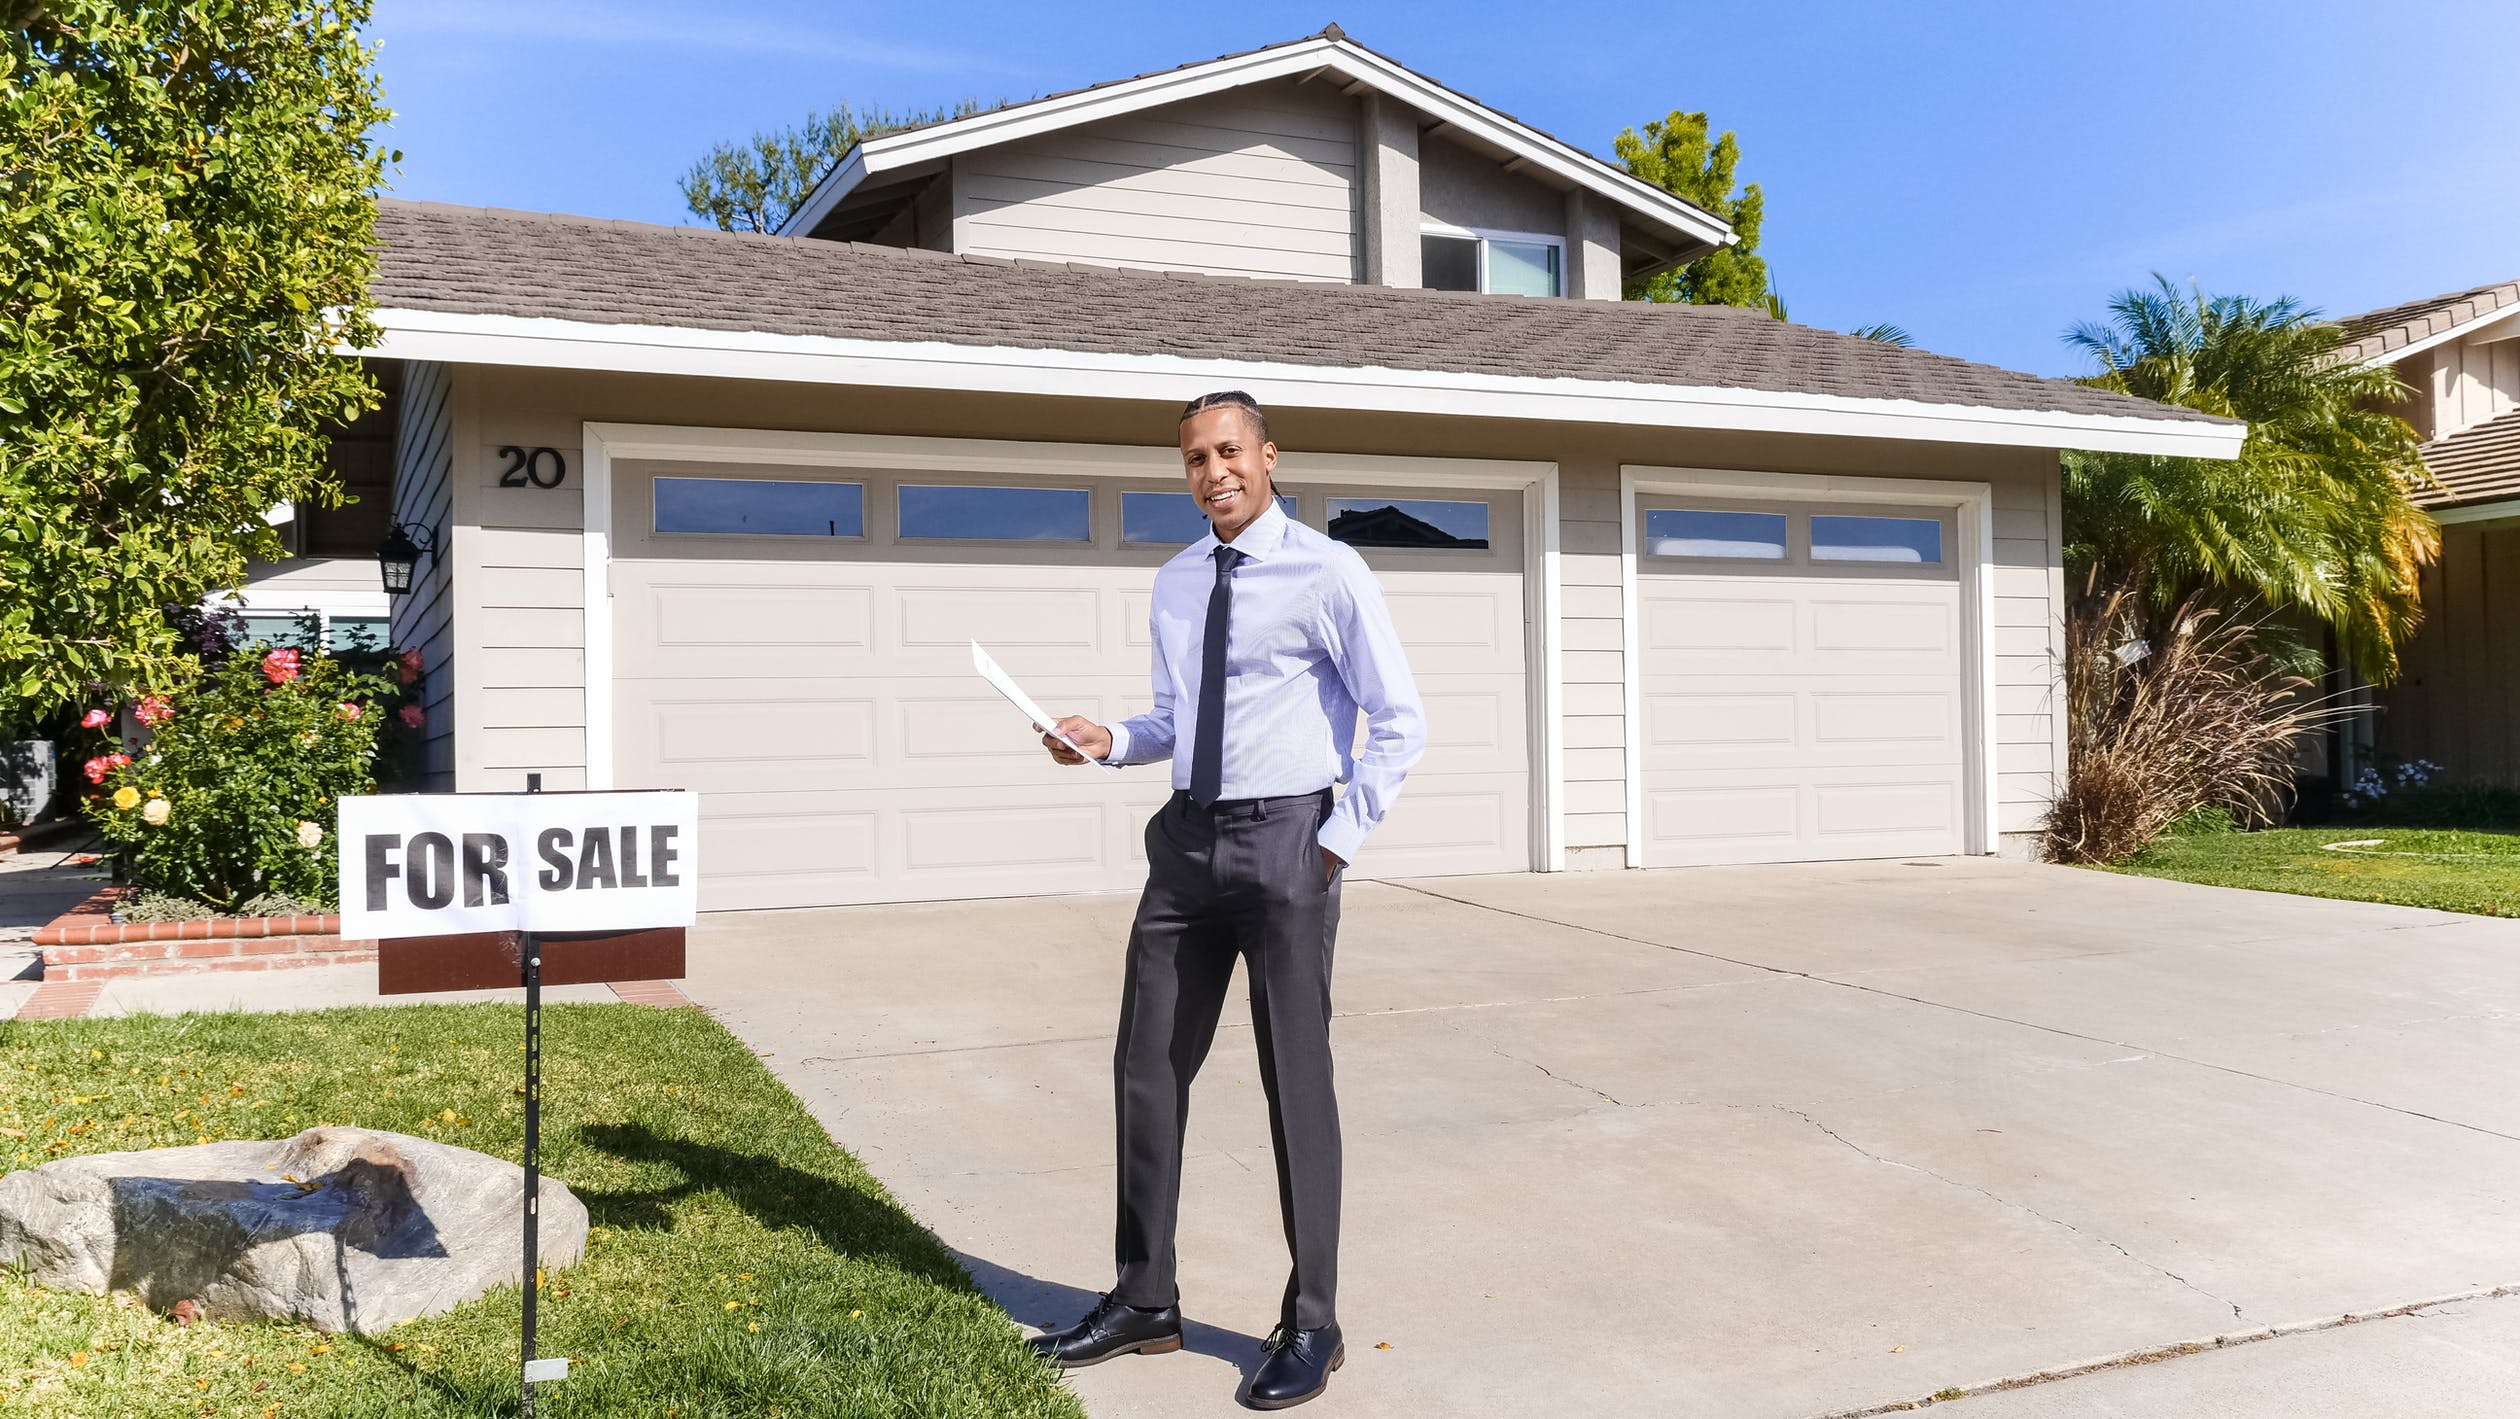 A man standing in front of the house for sale